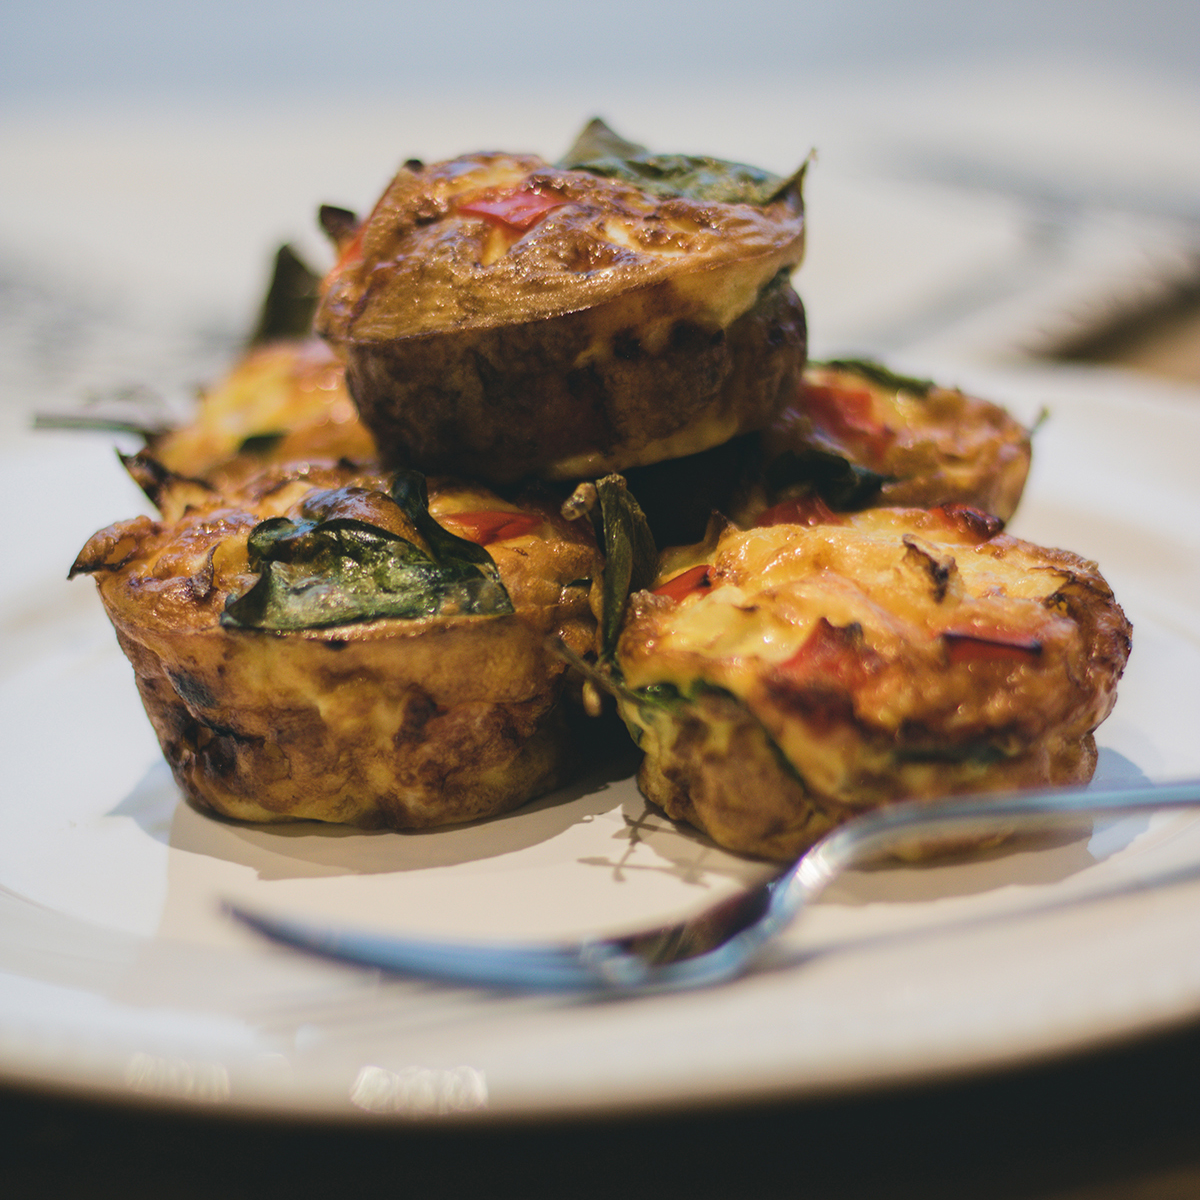 Egg veggie muffins on a plate